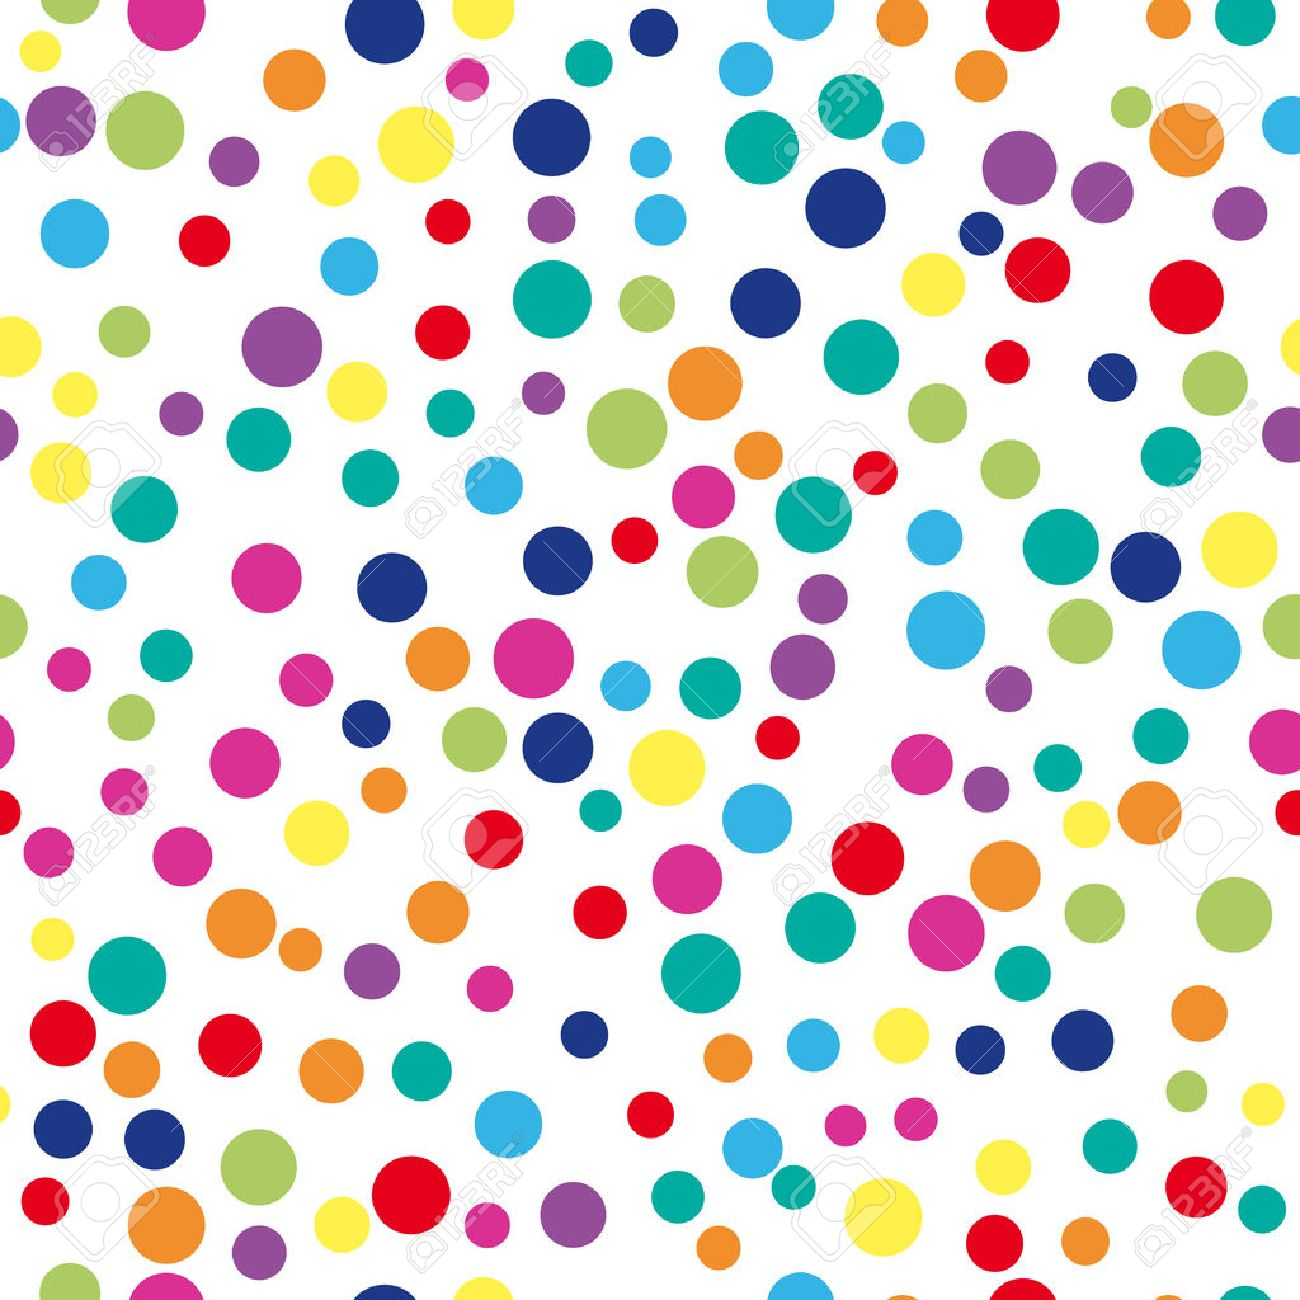 Colorful abstract dot background. illustration for bright design. Circle art round backdrop. Seamless pattern decoration. Color texture holiday element wallpaper. Decor fun spot card Happy mood - 57583904